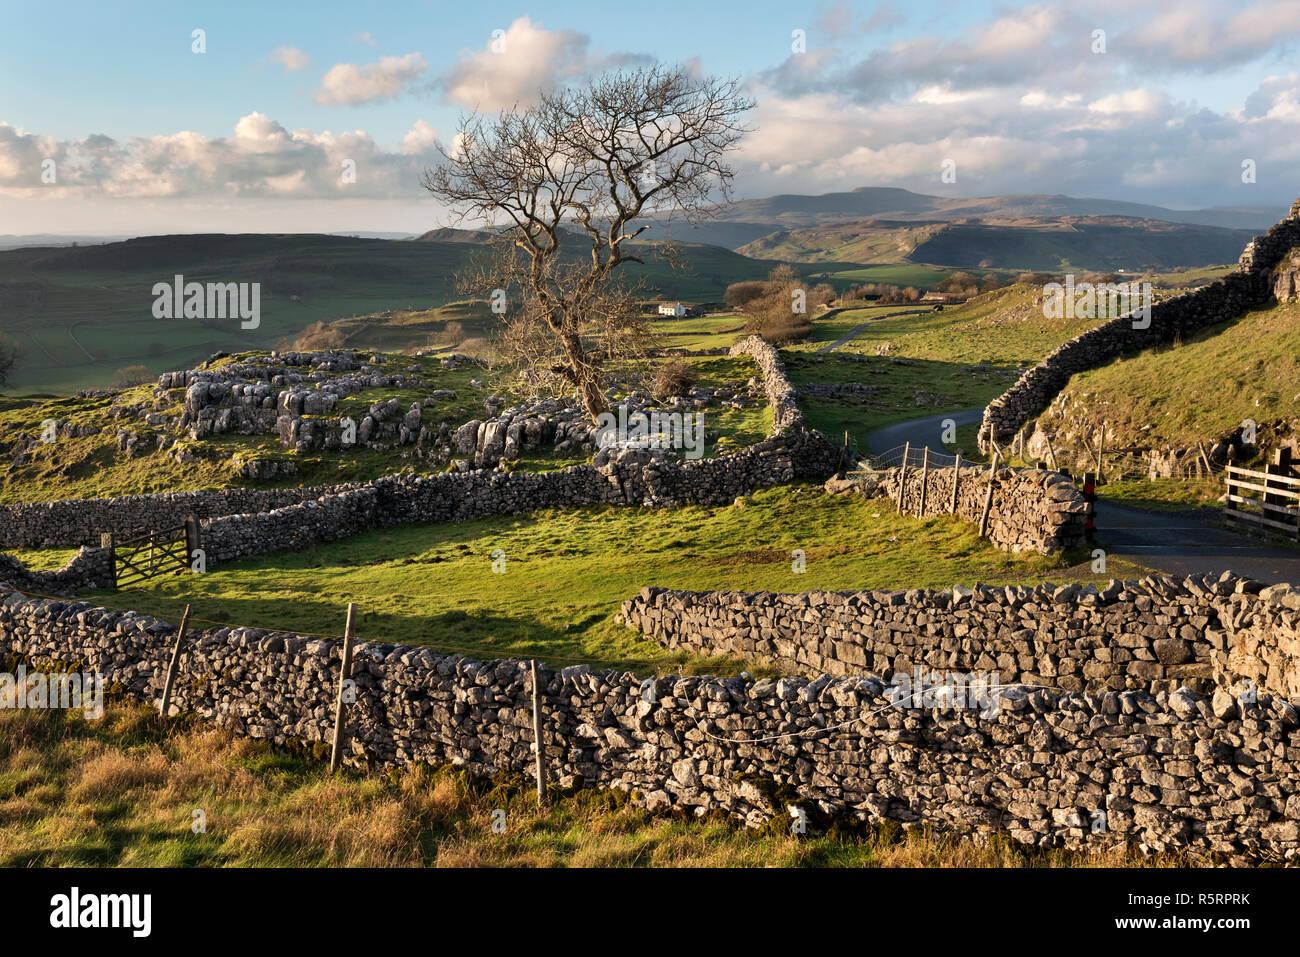 Winskill Stones limestone pavement area, with Ingleborough peak on the horizon. Langcliffe, Yorkshire Dales National Park. - Stock Image